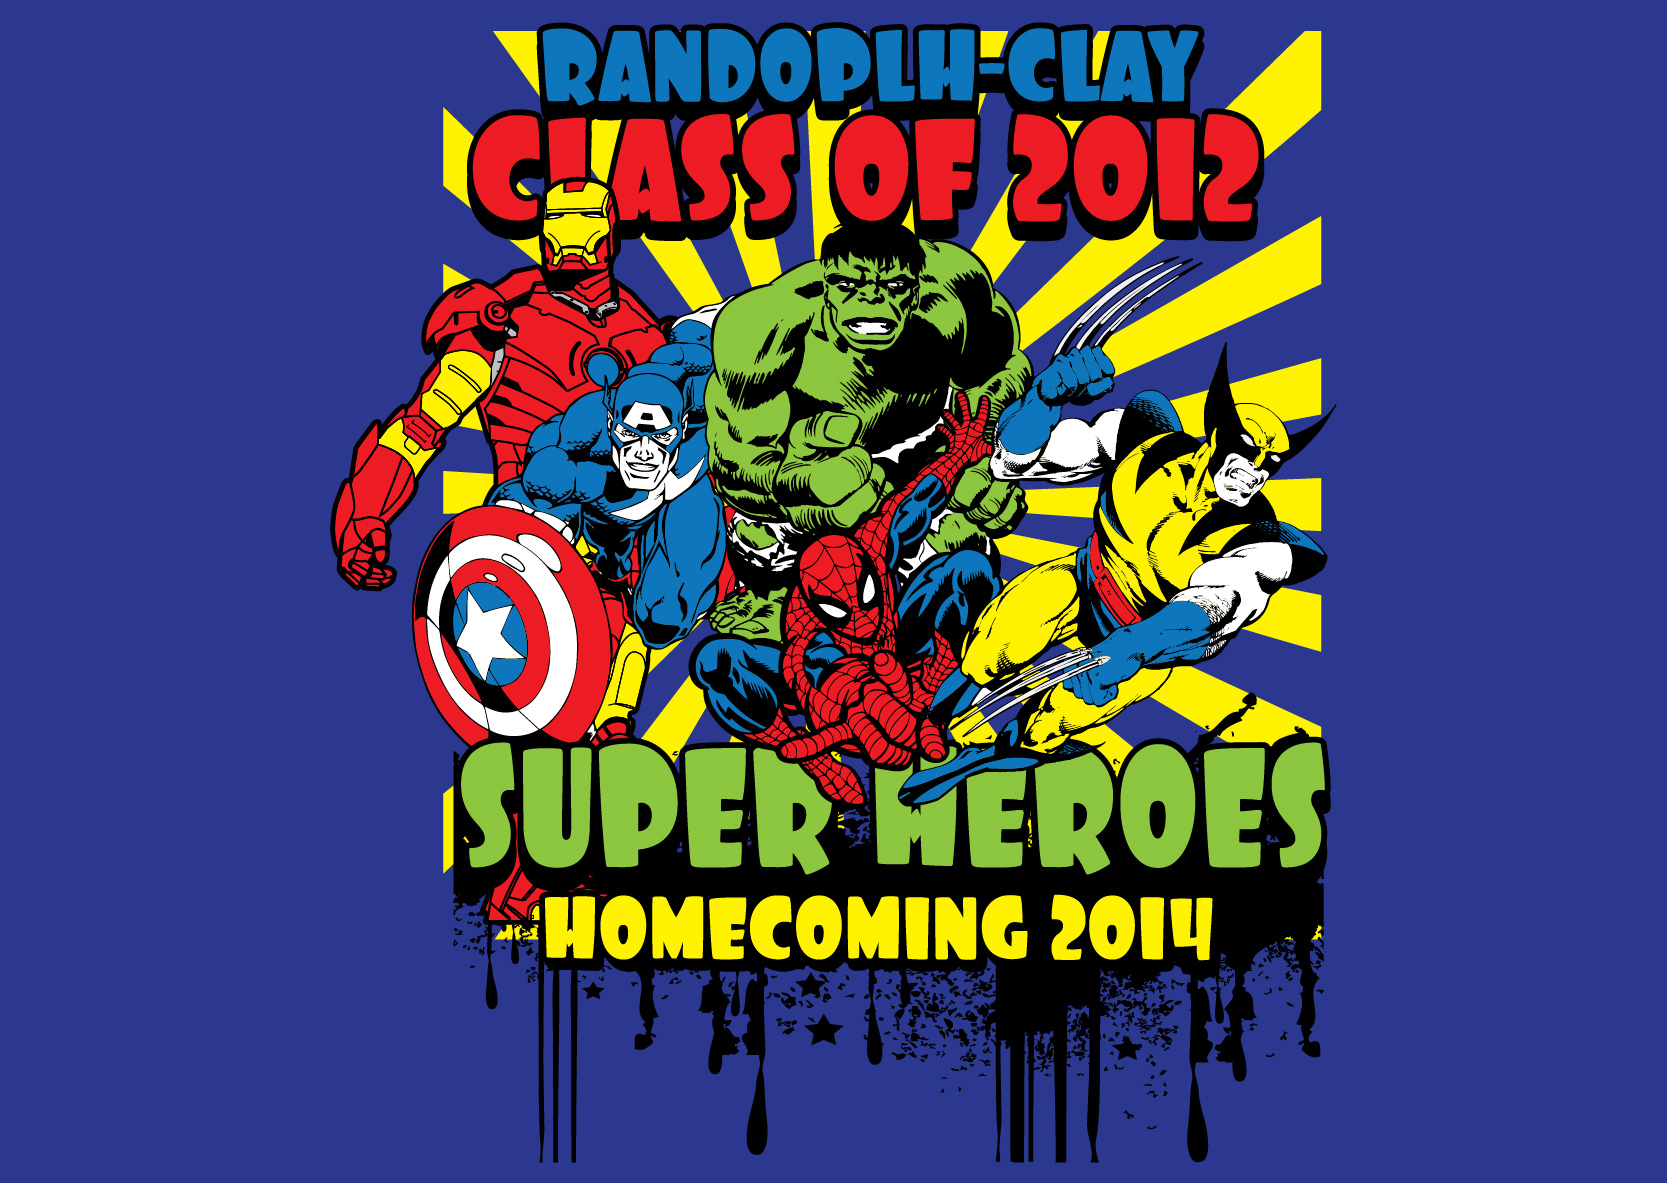 Randolph Clay Class of 2012 Homecoming